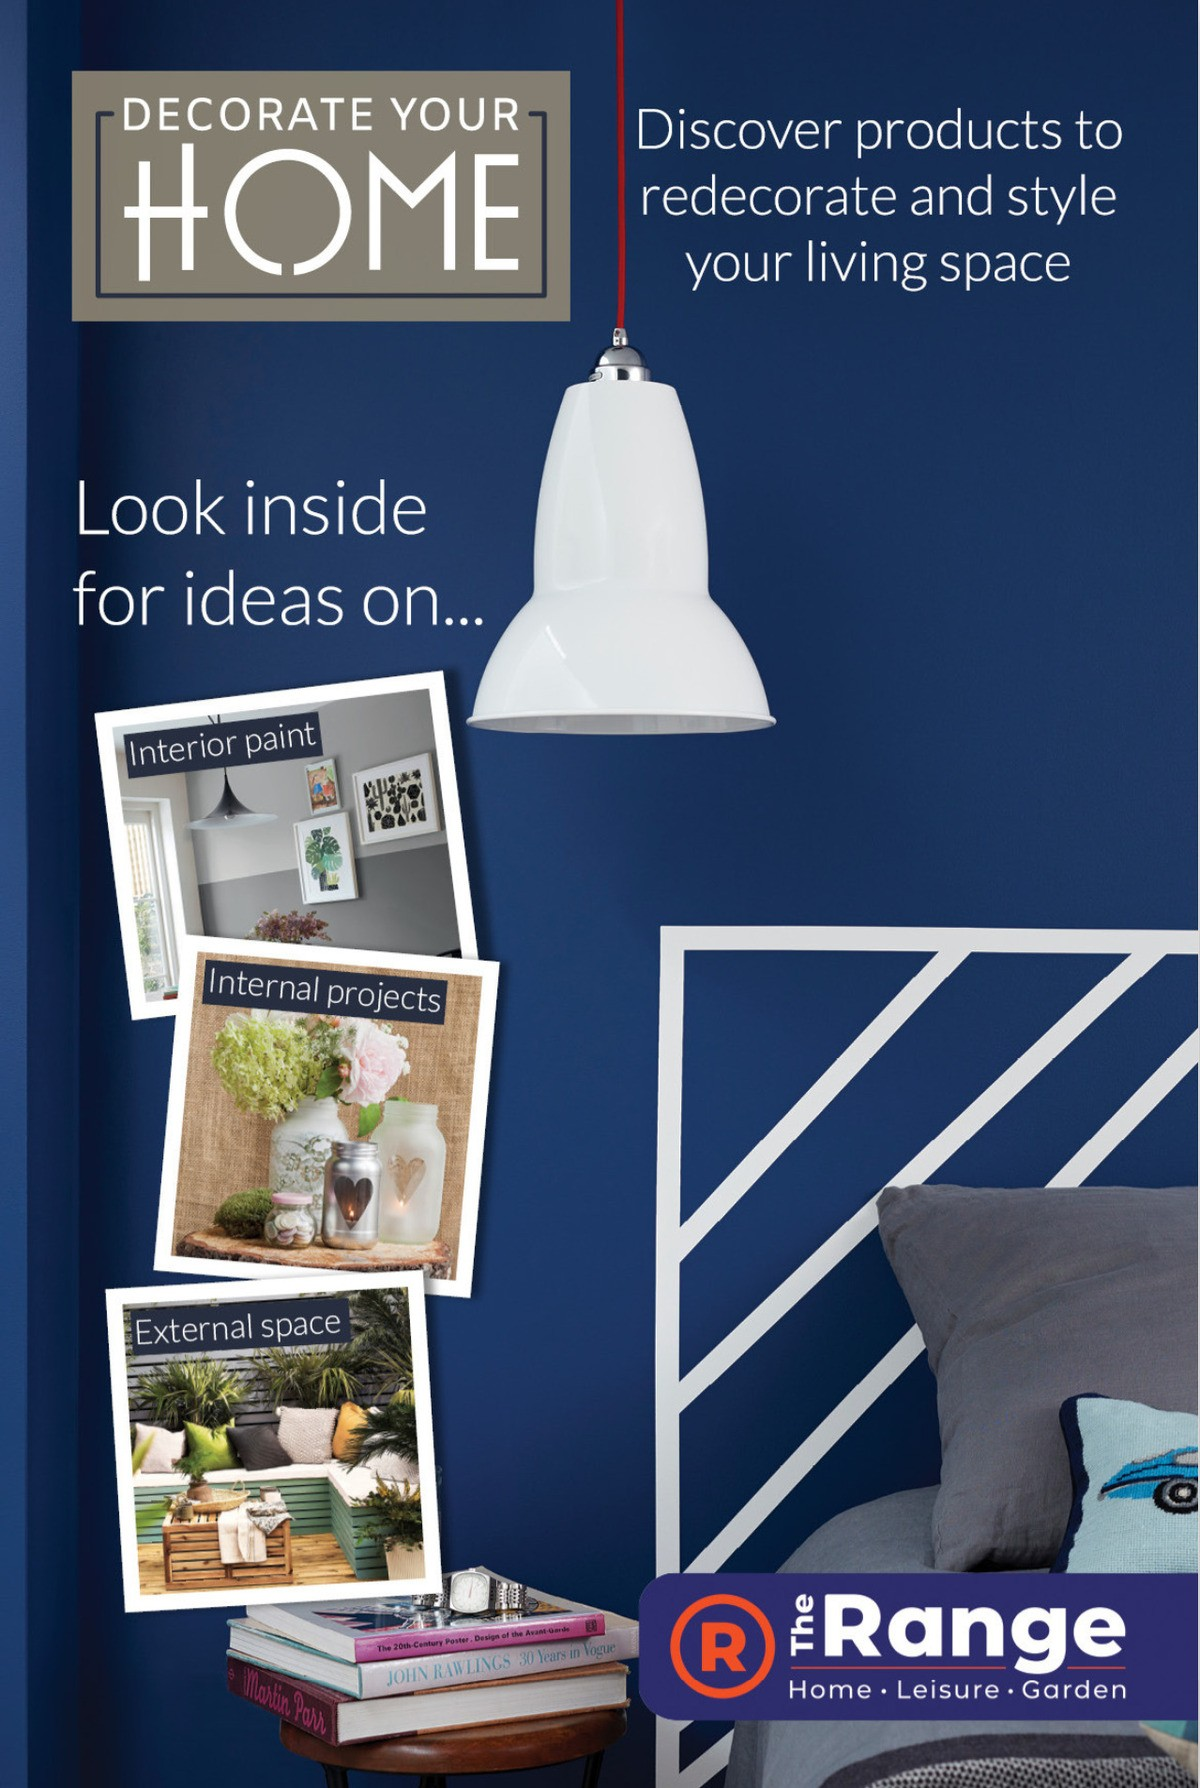 The Range Decorate Your Home Offers from June 5